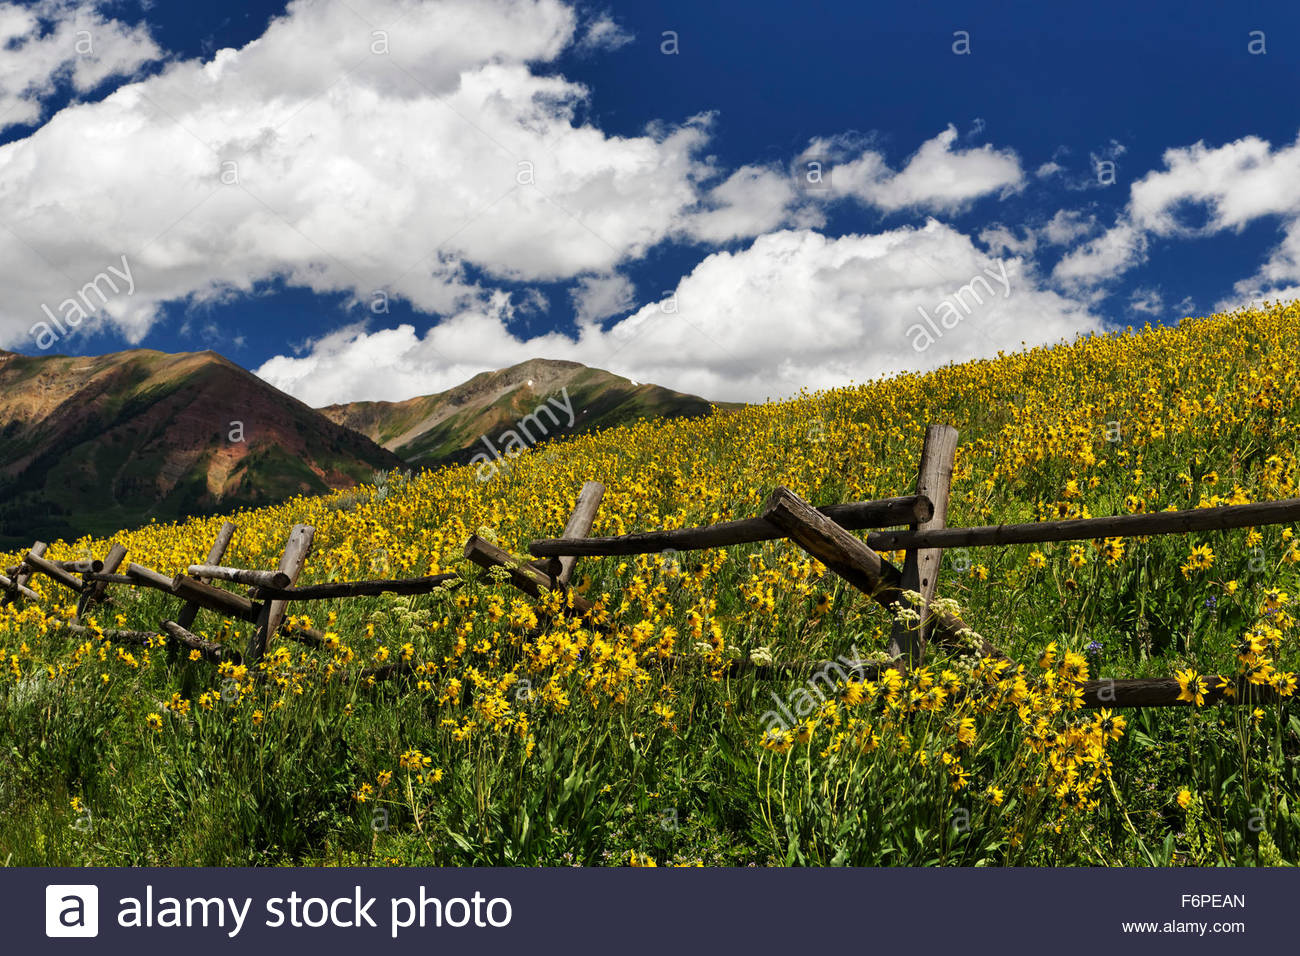 Old fence and wildflowers, Crested Butte, Colorado - Stock Image